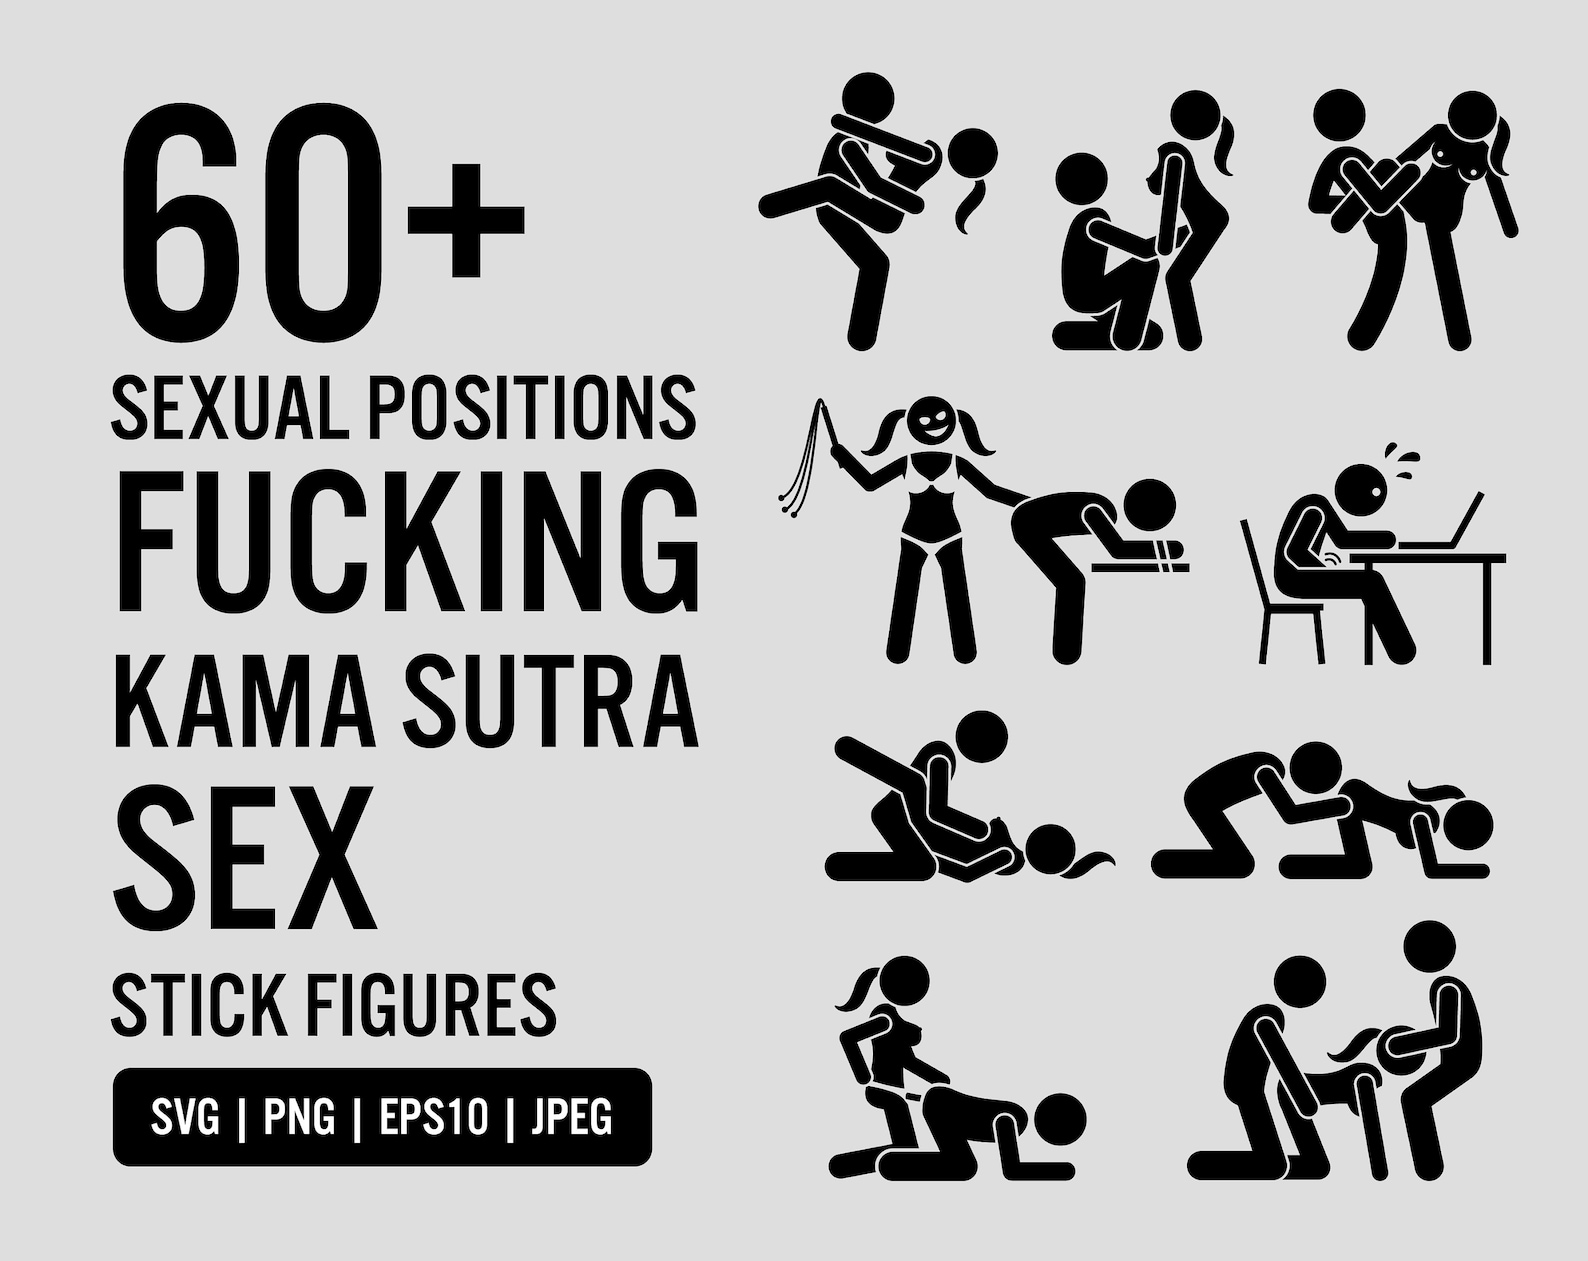 Kamasutra fucking positions hot gallery